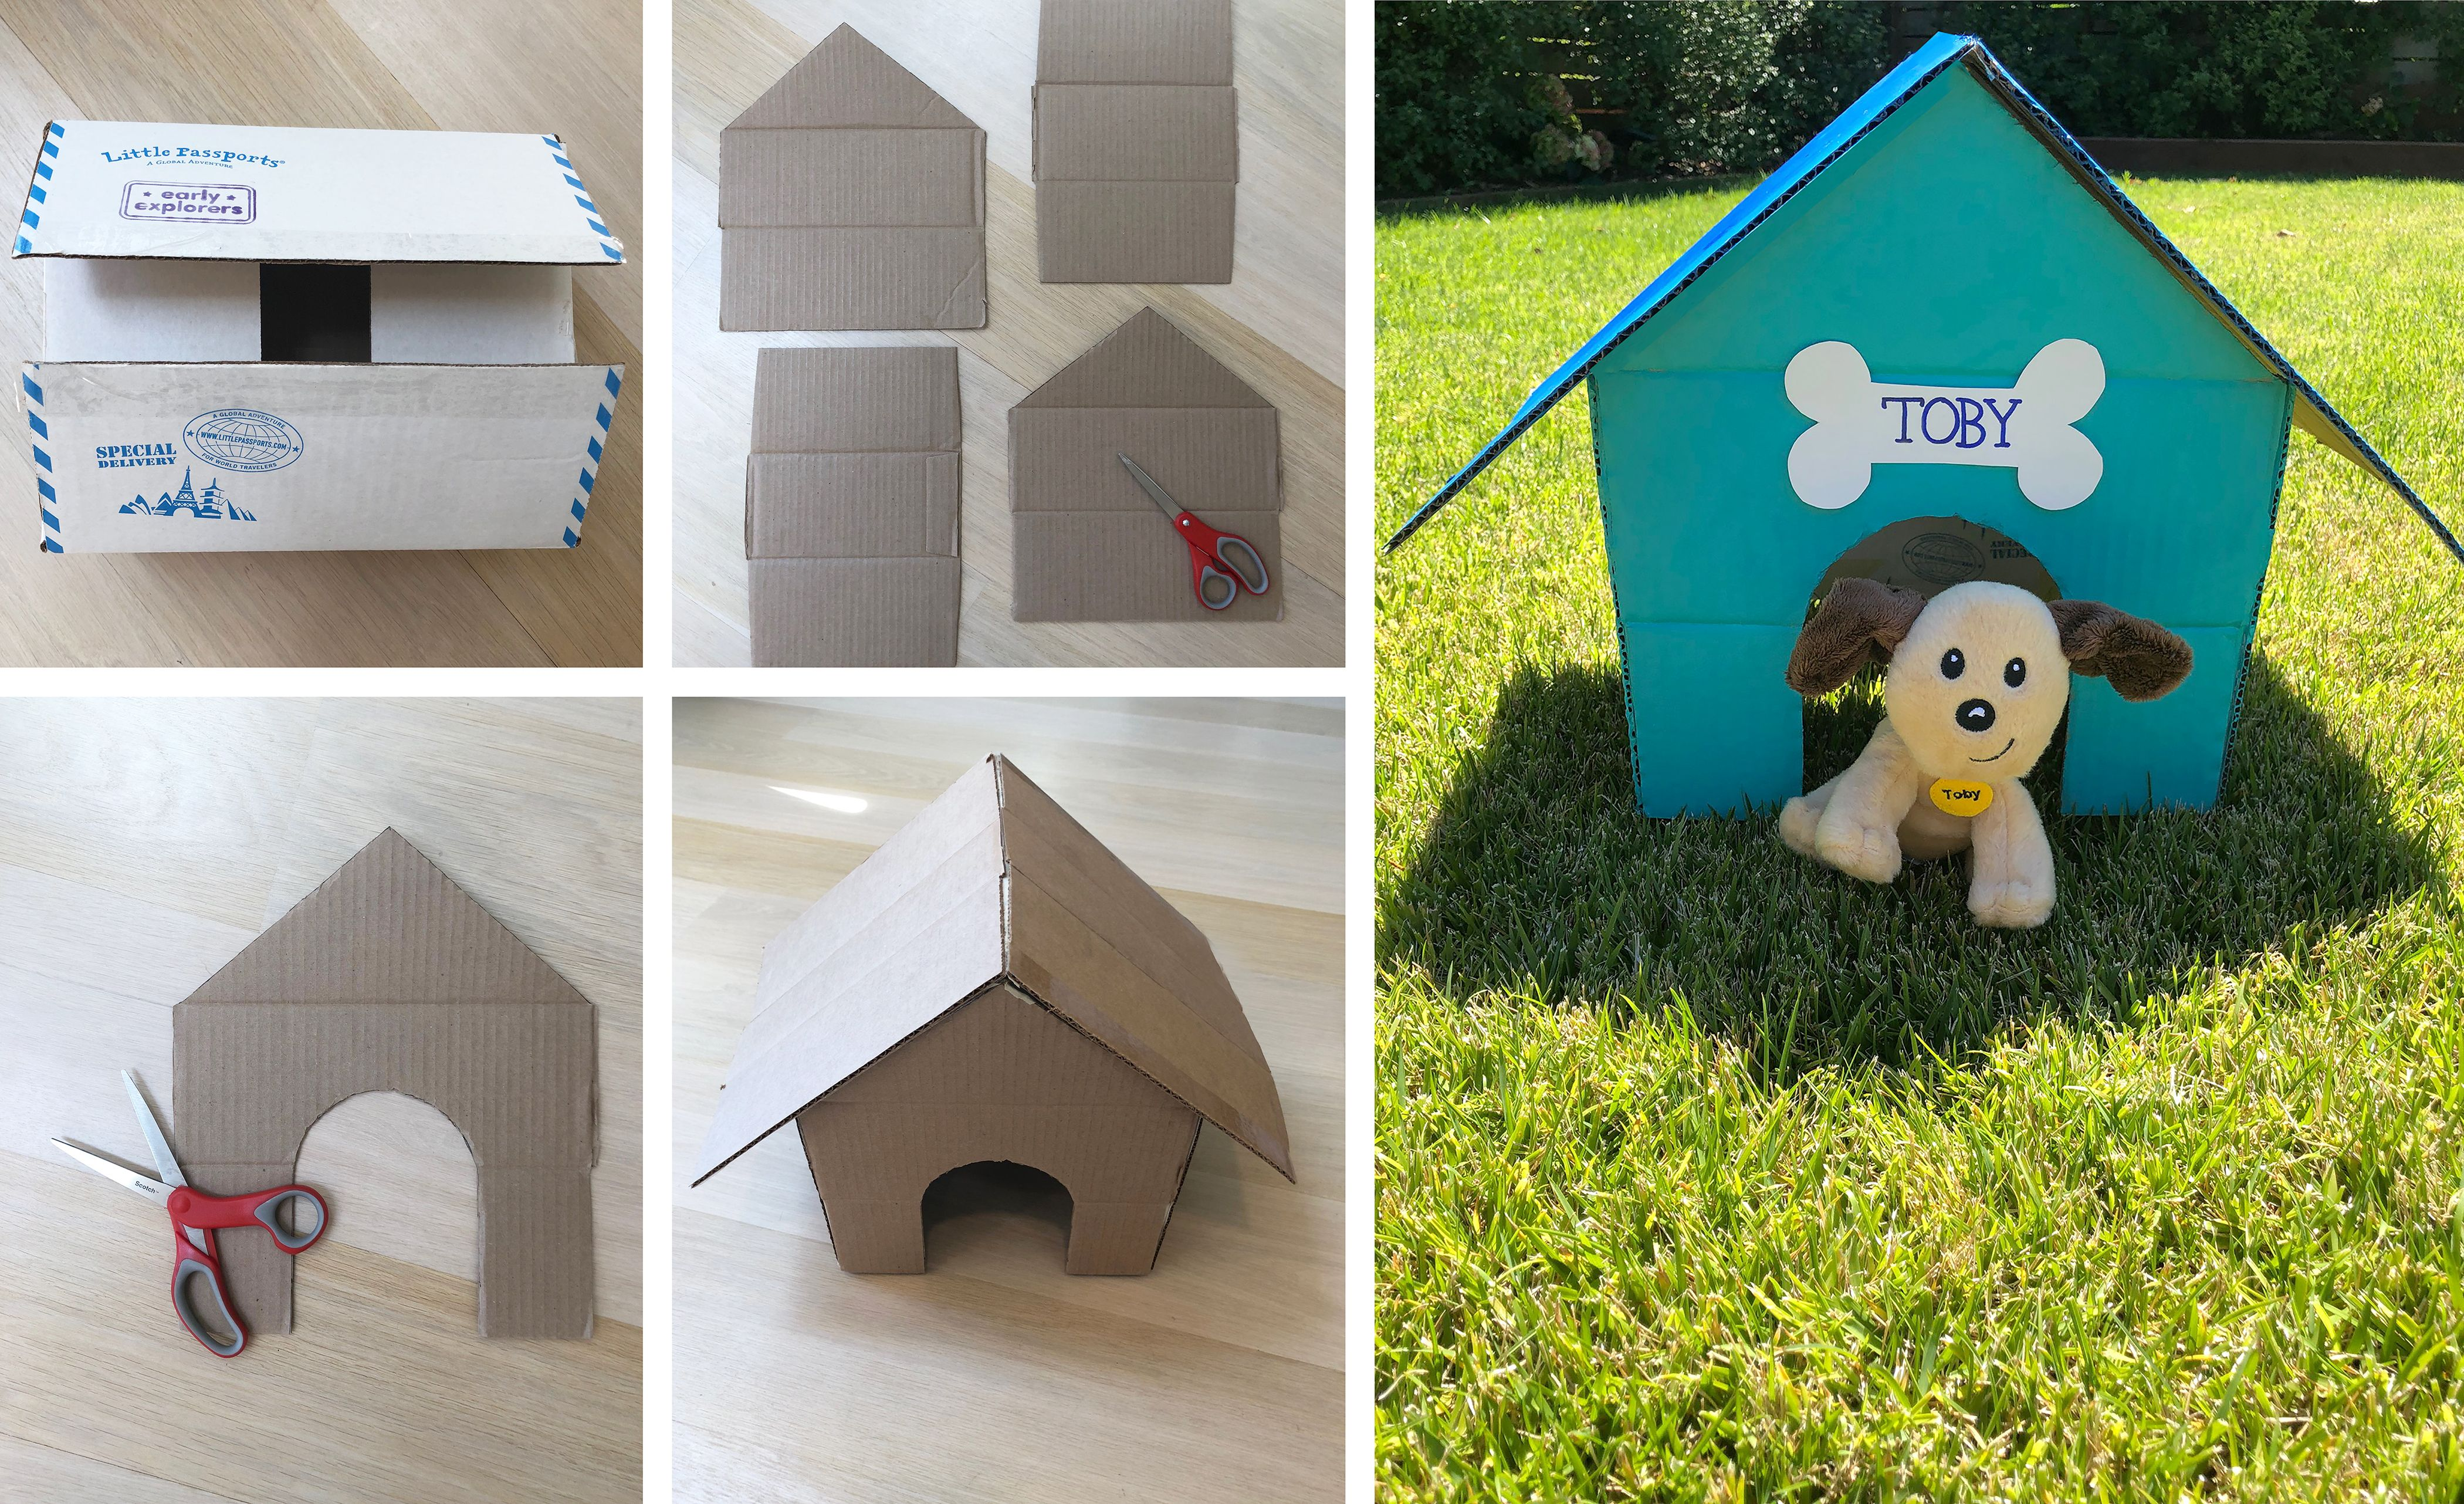 Upcycle Diy Toby S Dog House Little Passports Diy Upcycle Dog House Diy Diy Dog Stuff [ 2563 x 4200 Pixel ]